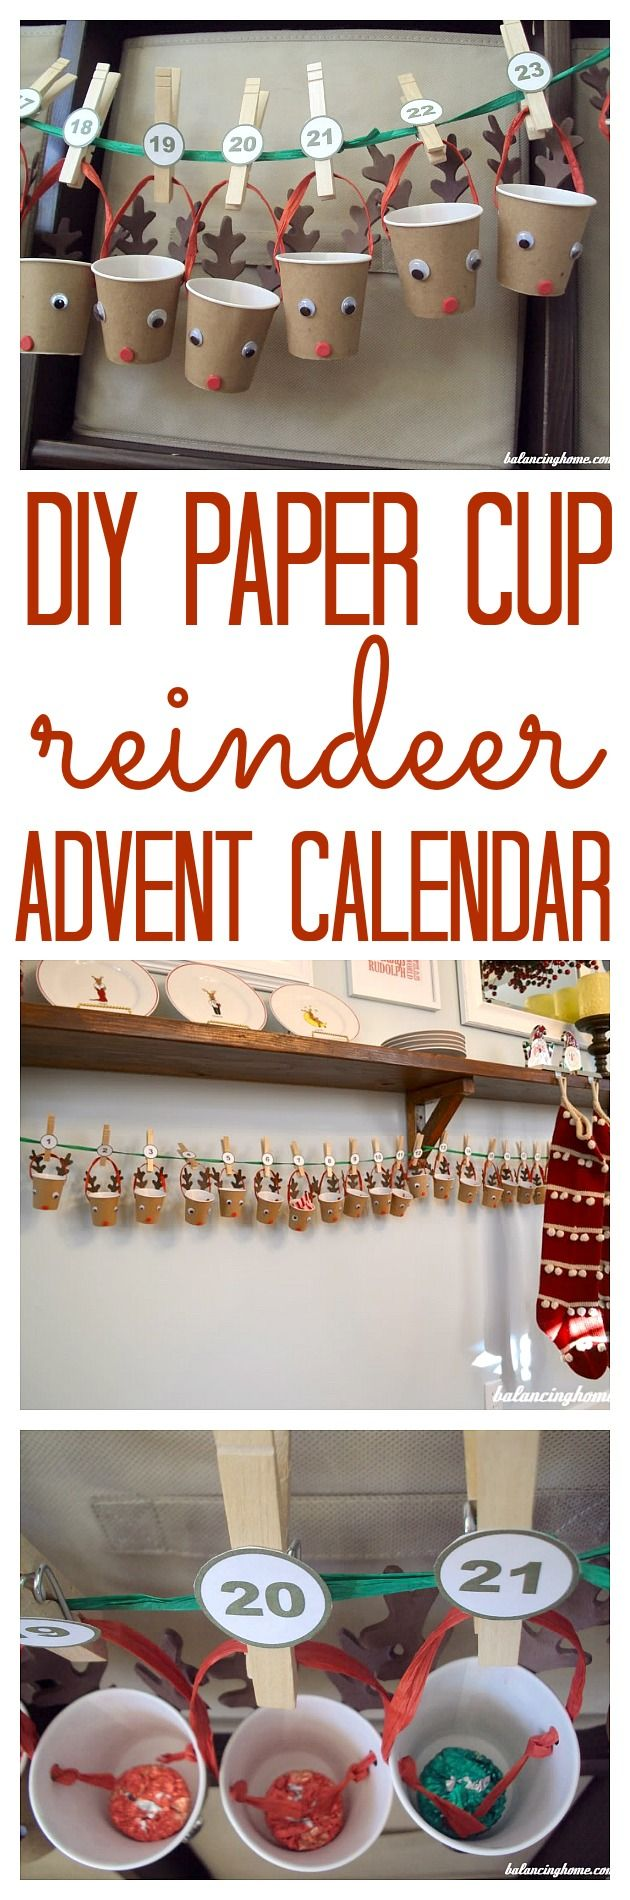 DIY paper cup reindeer advent calendar. Cheap, fun and easy for the kiddos to use.